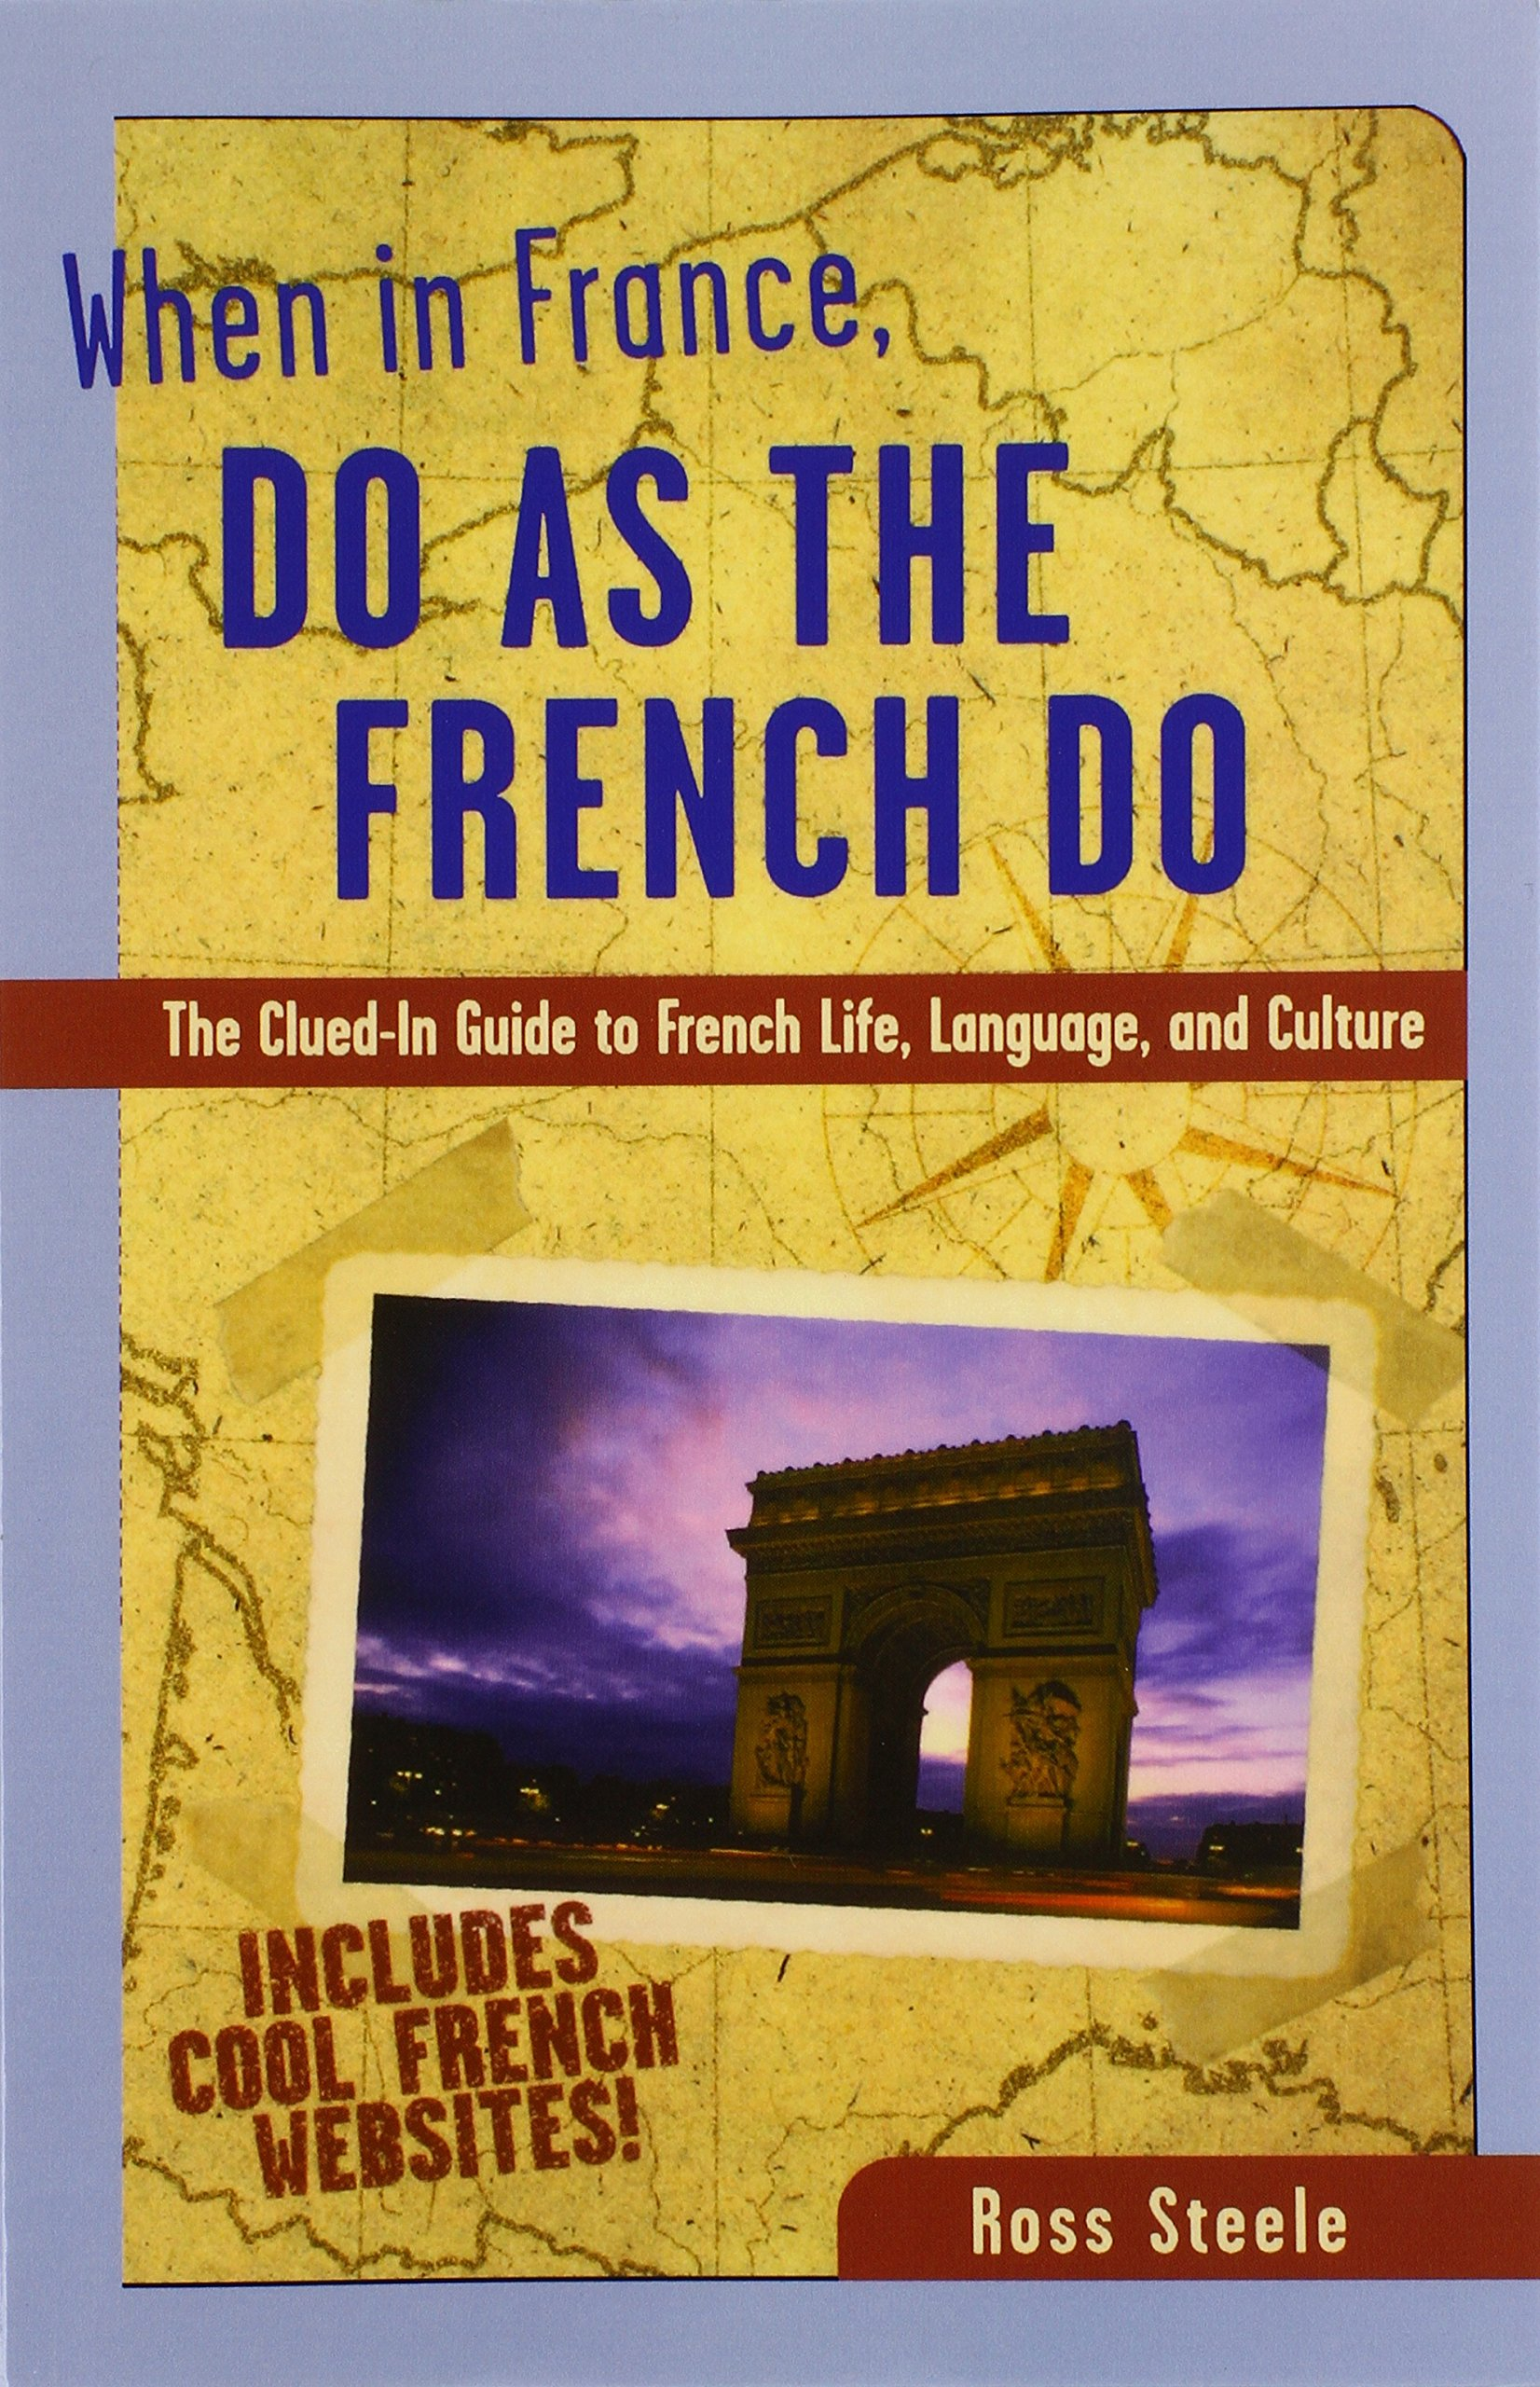 When in France, Do as the French Do by Brand: McGraw-Hill